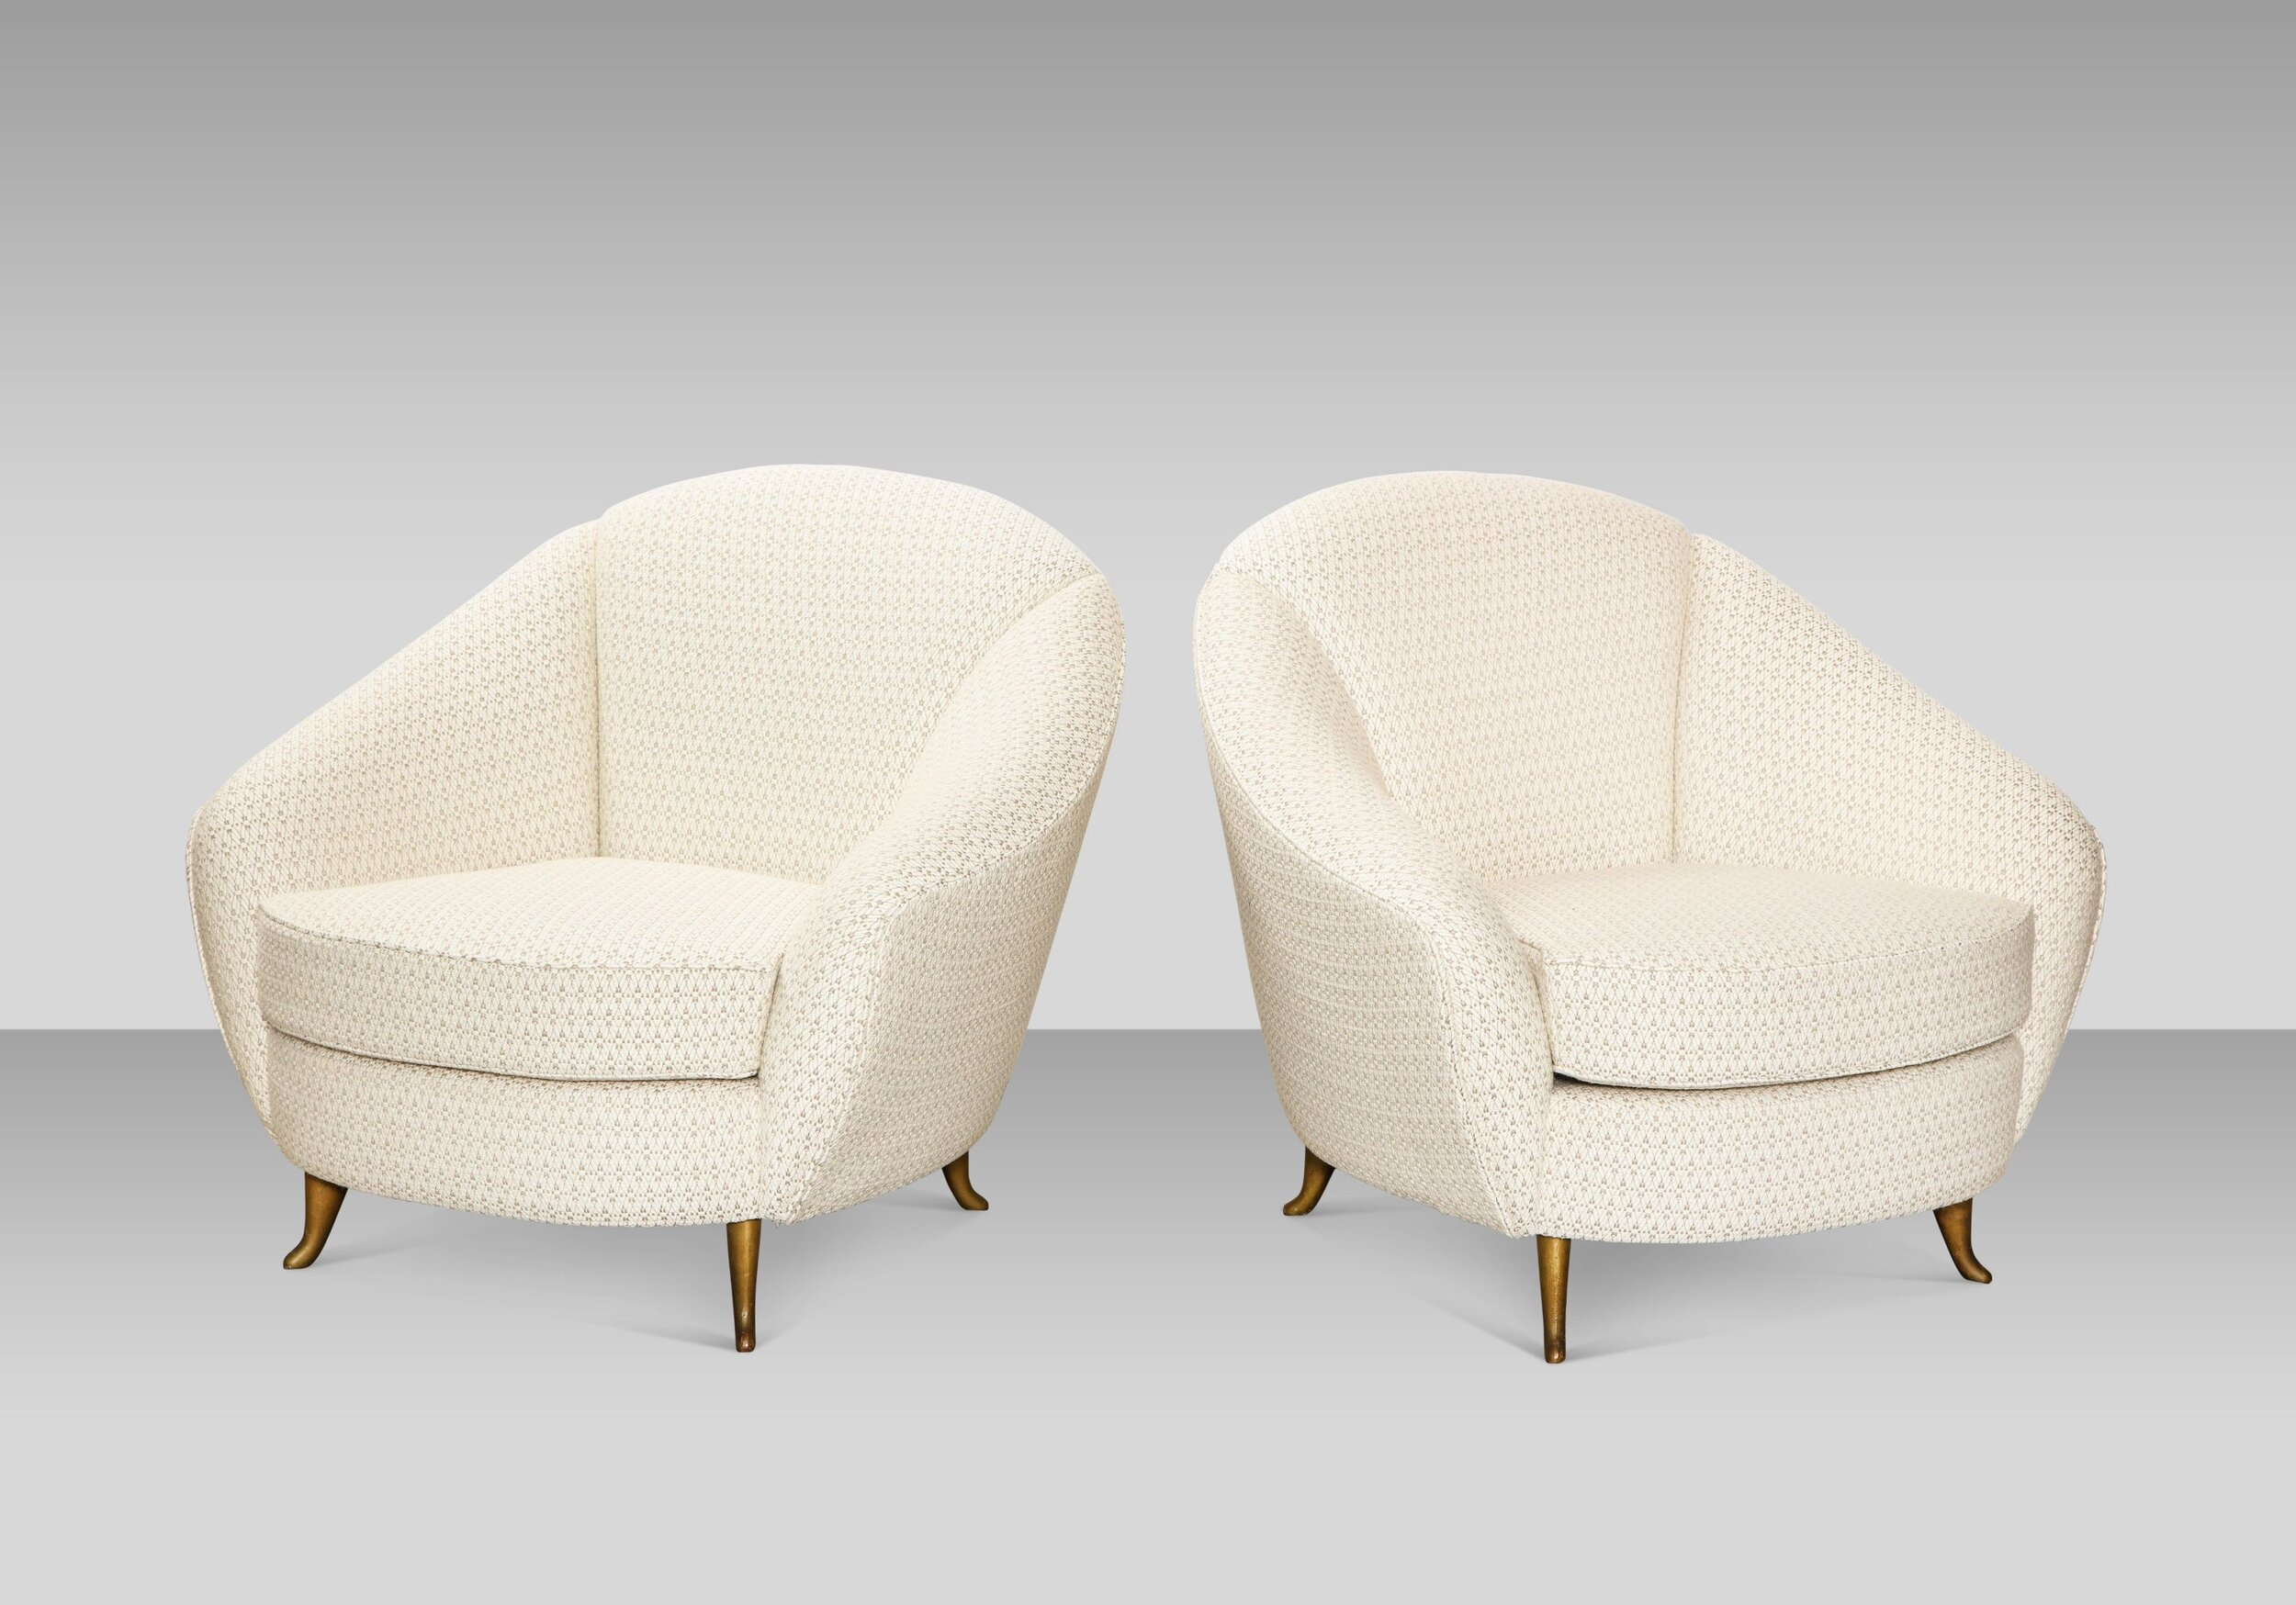 gio ponti chair folding kijiji mississauga pair of lounge chairs by for isa donzella